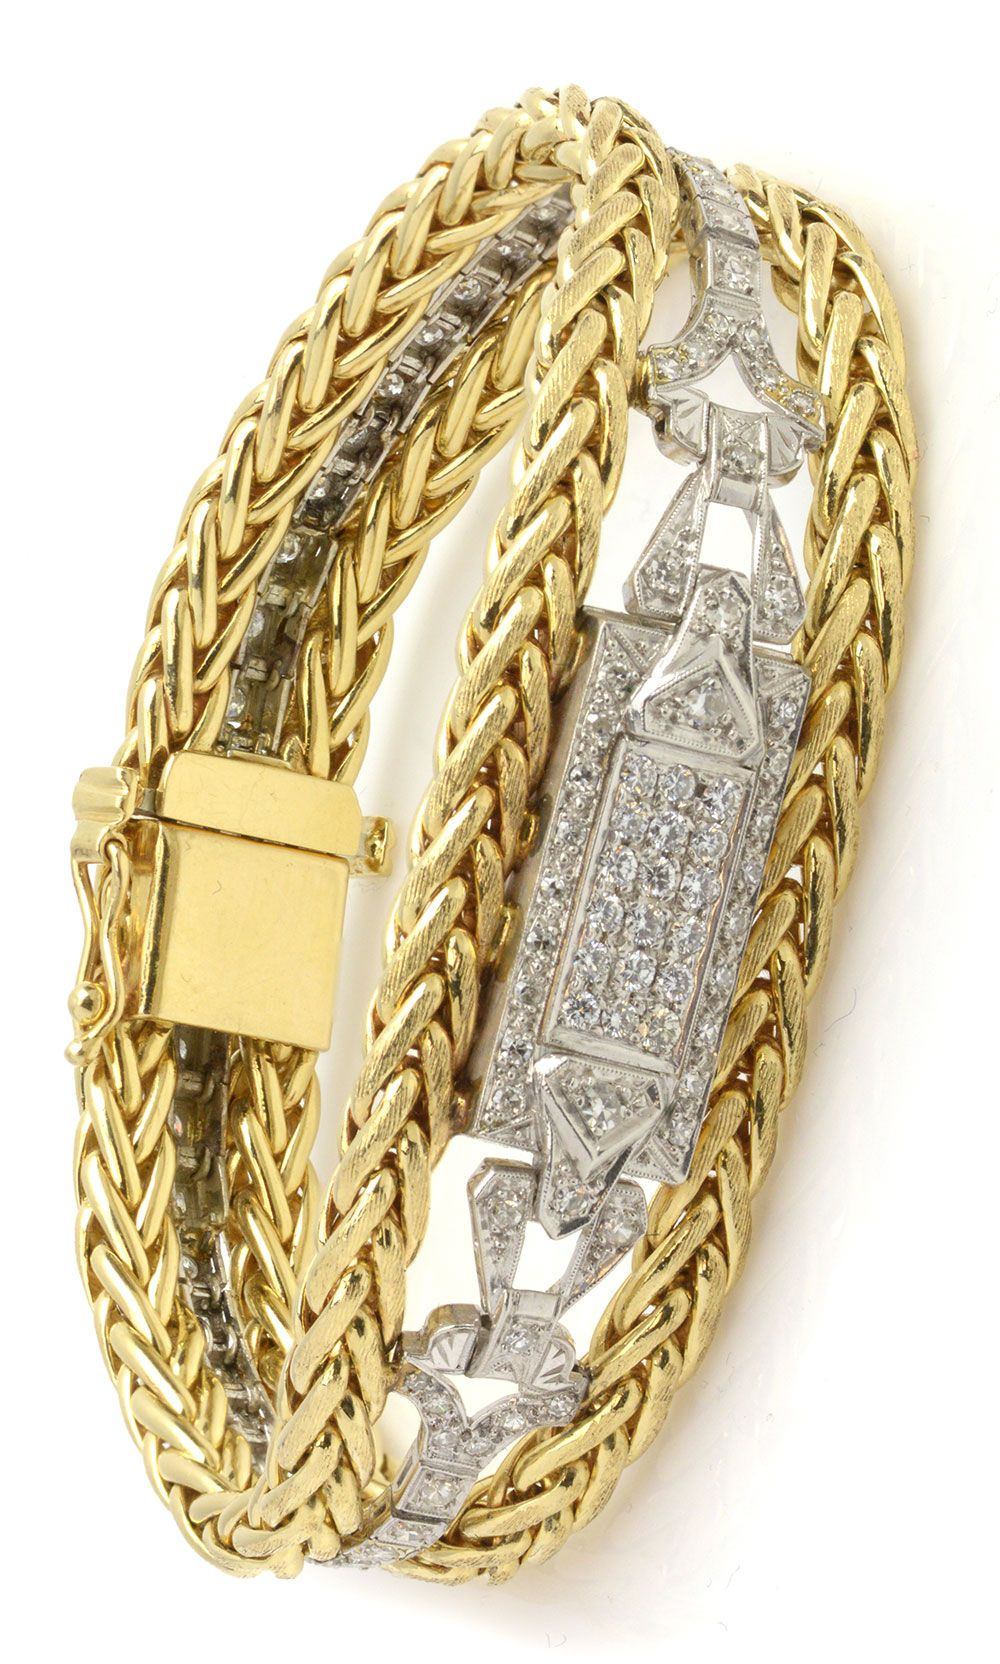 Unique diamond and yellow gold chain bracelet with clasp item